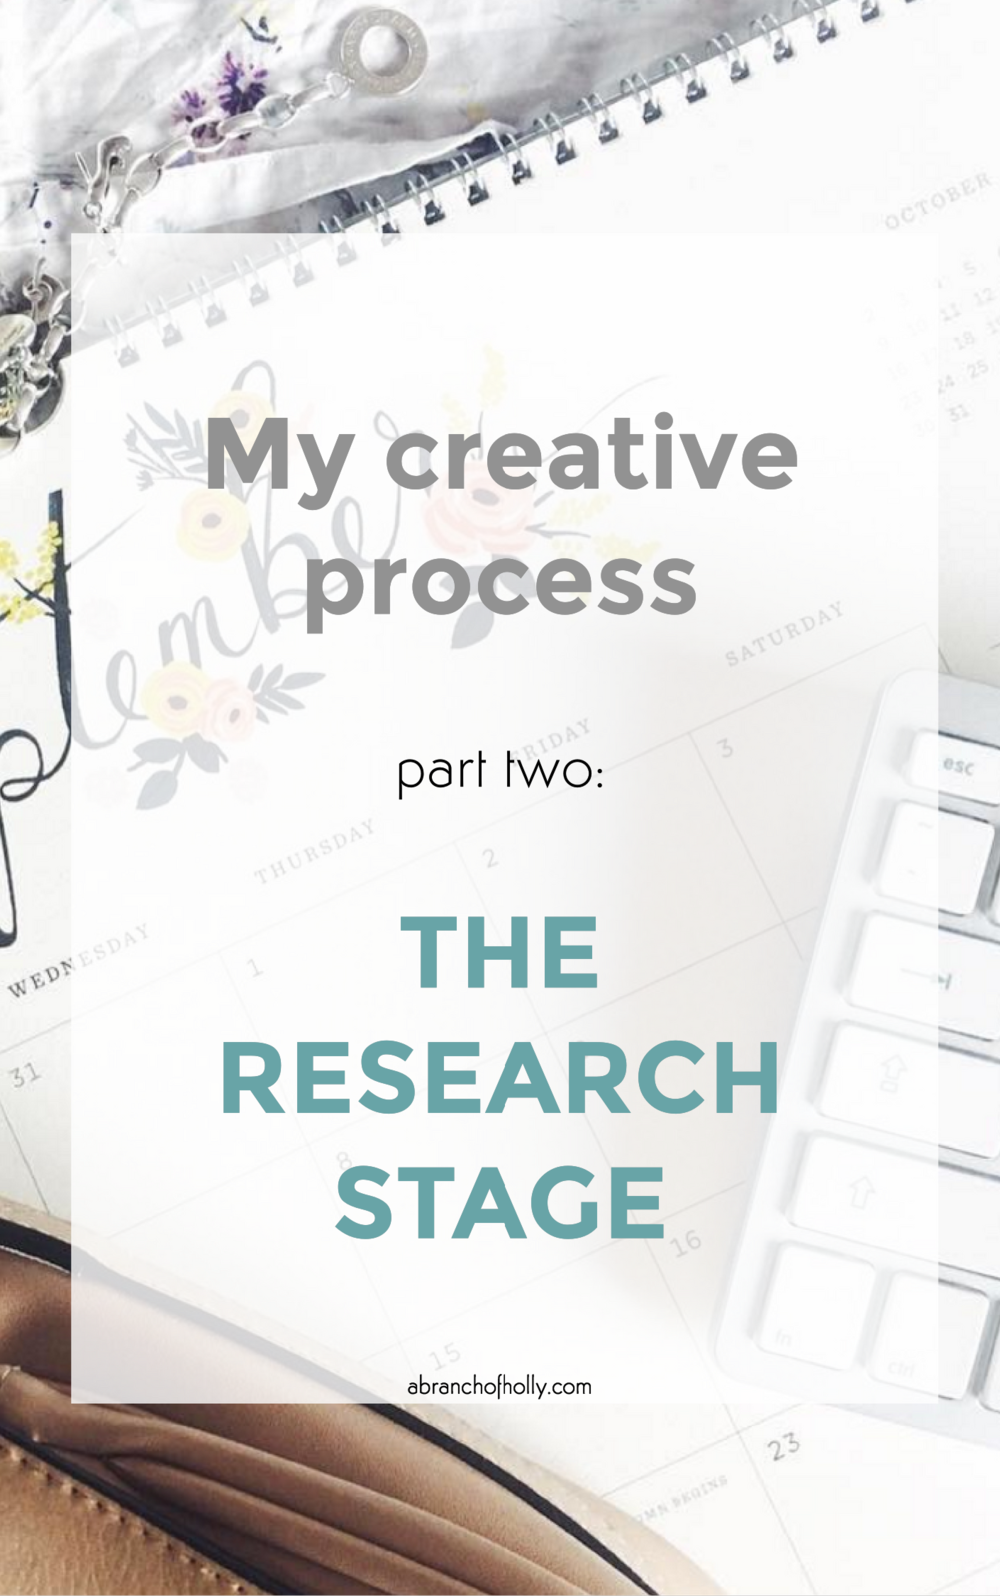 my creative process part two: the research stage